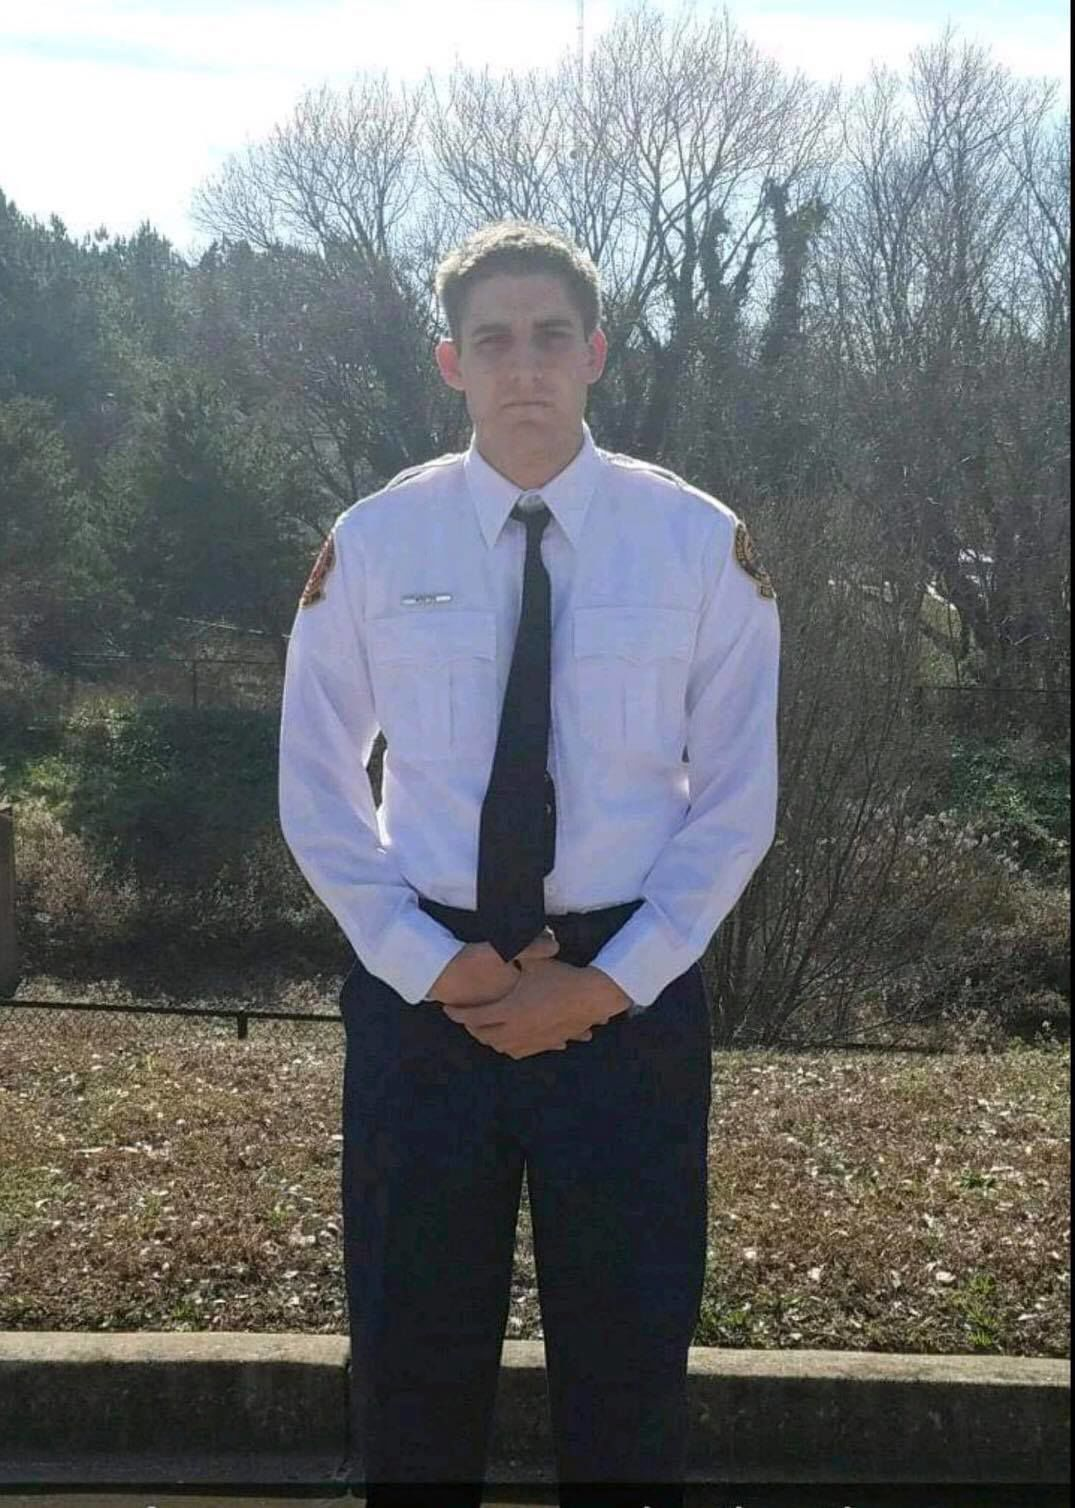 19-year-old DeKalb firefighter from Lawrenceville dies in fatal wreck